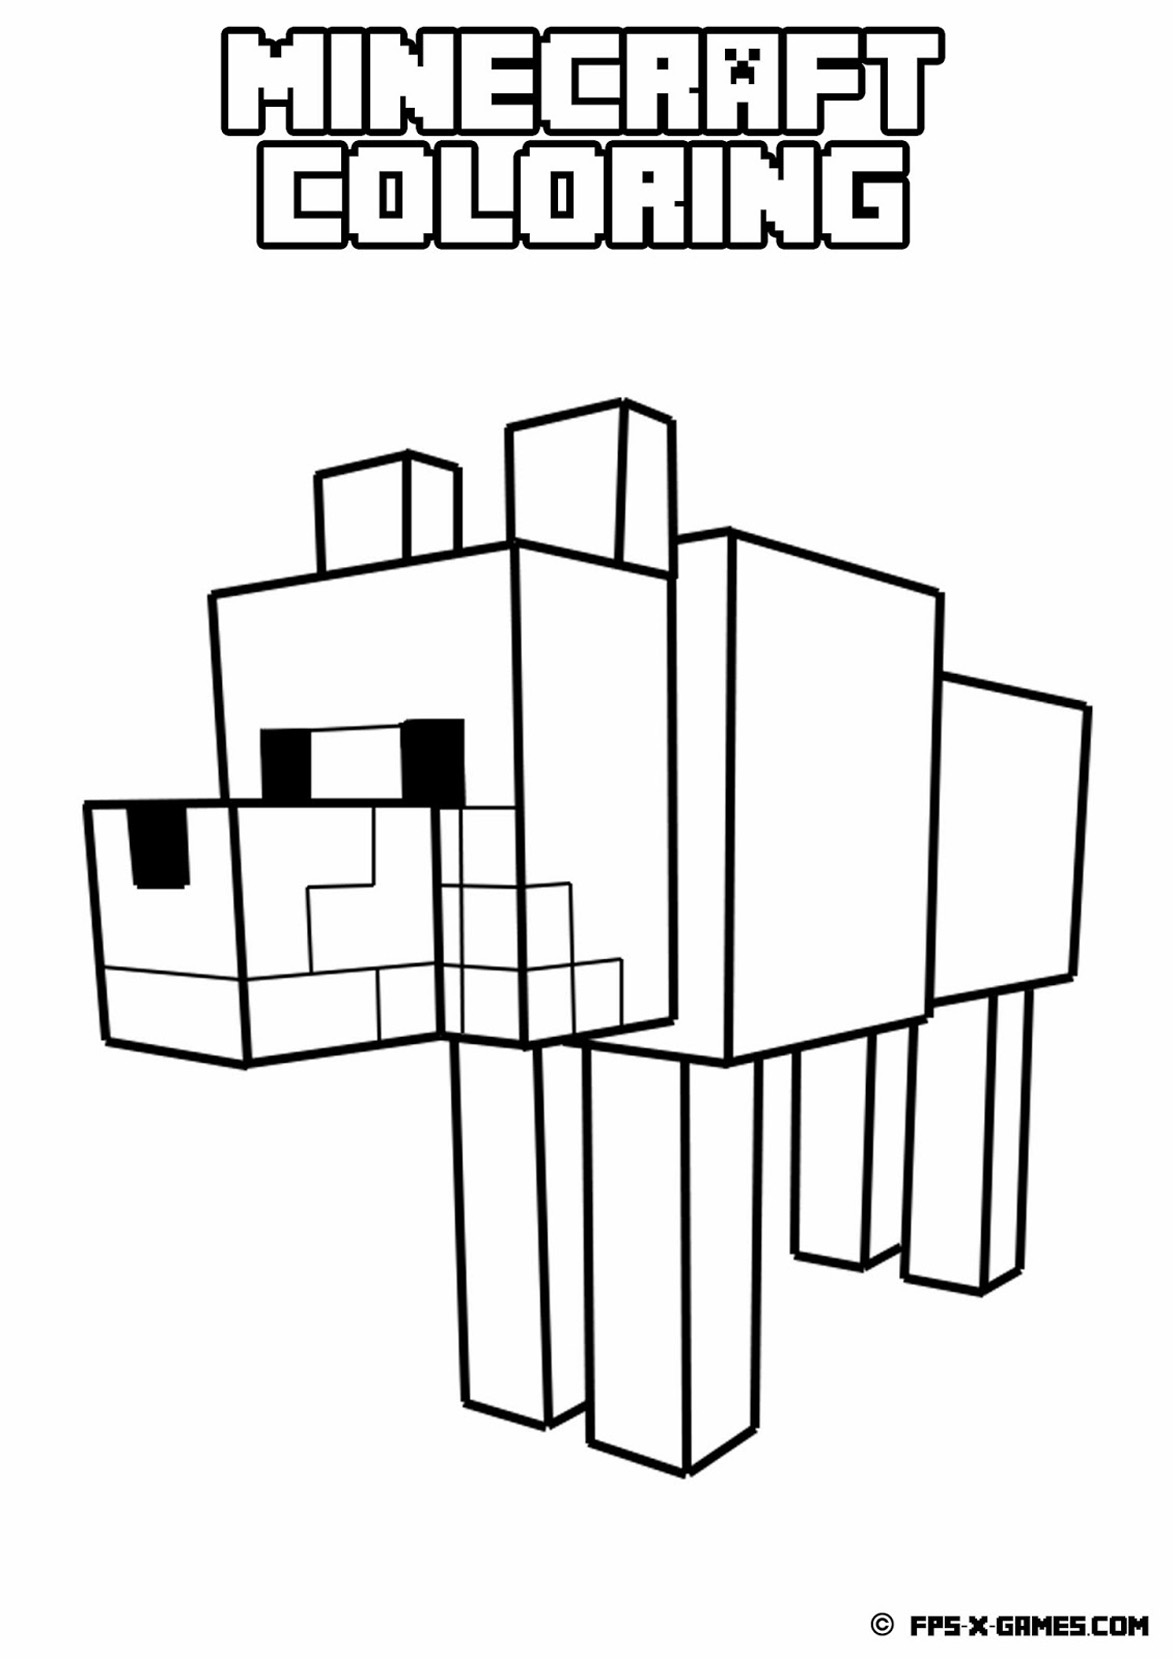 1173x1659 Minecraft Coloring Pages For Kids To Print Amp Color